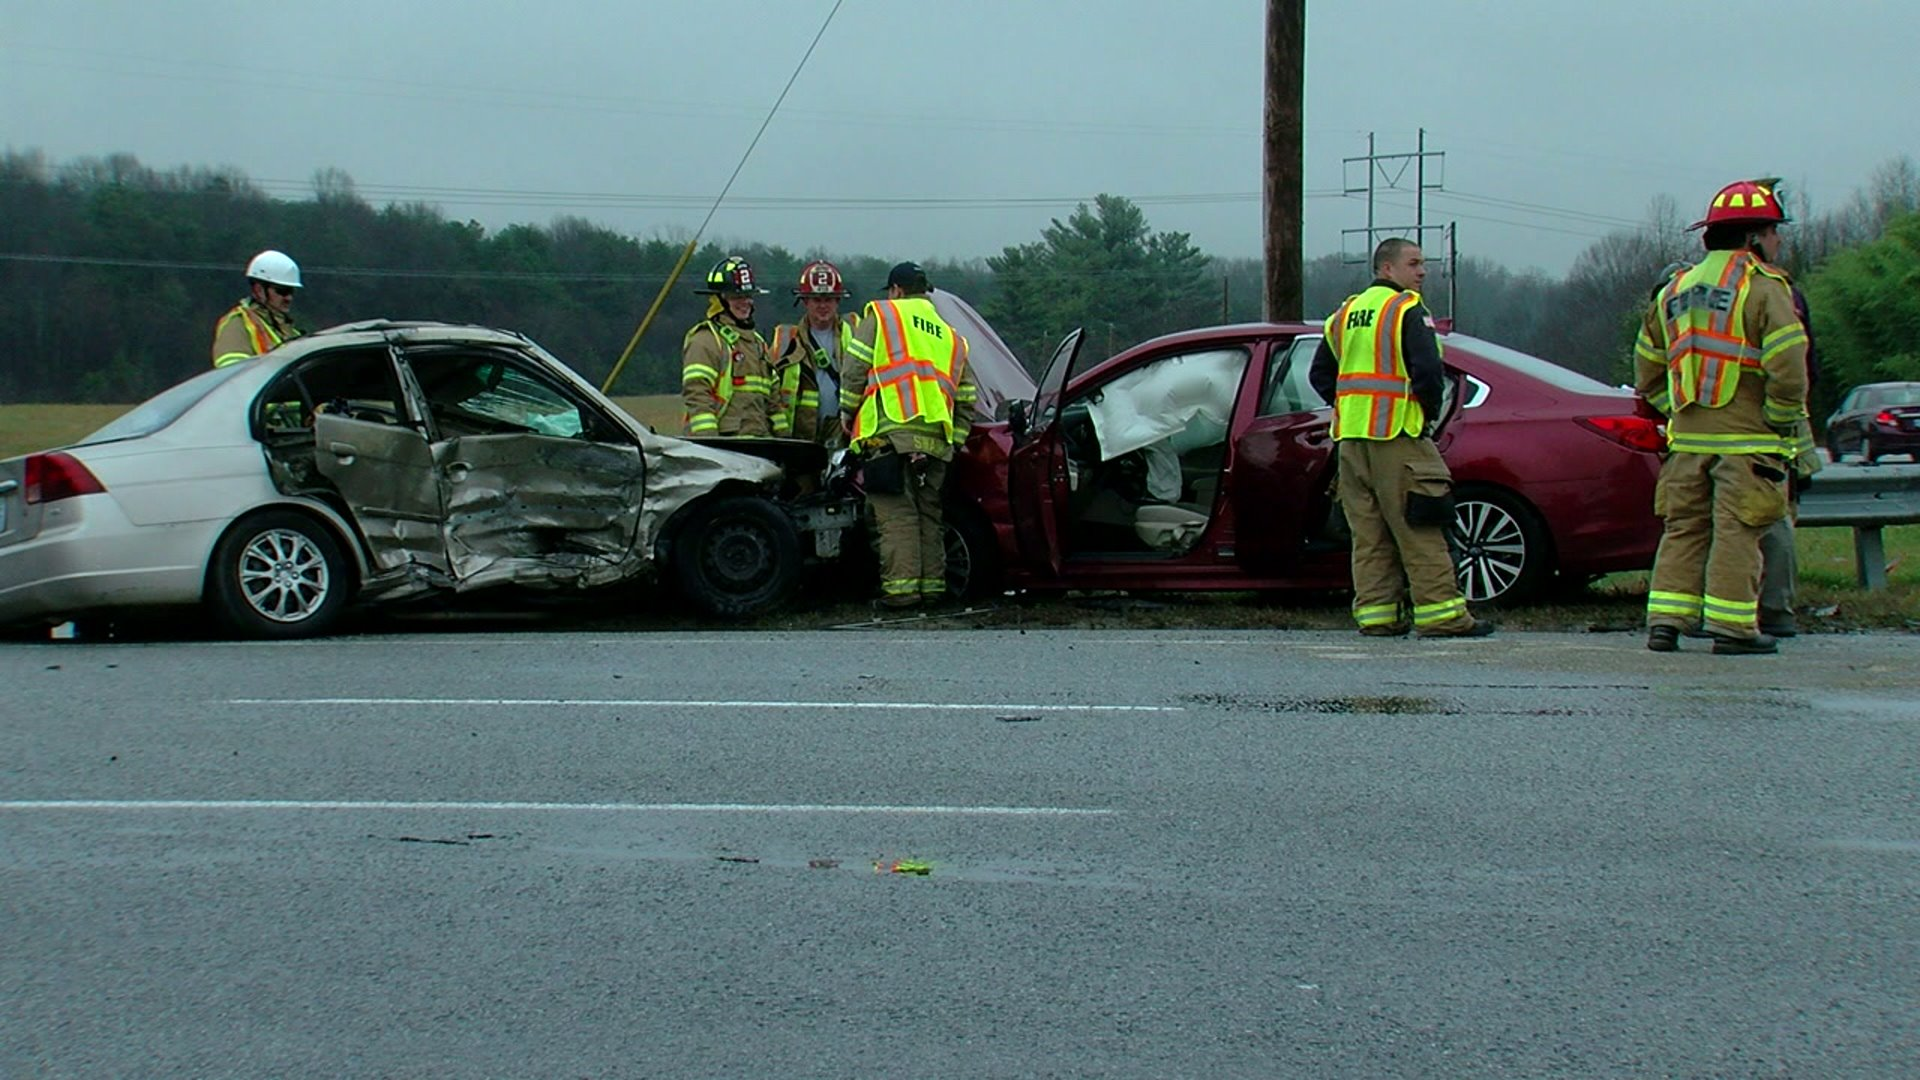 Two cars were involved a crash on US 311 ramp to I-85 Business in High Point. (David Weatherly/WGHP)